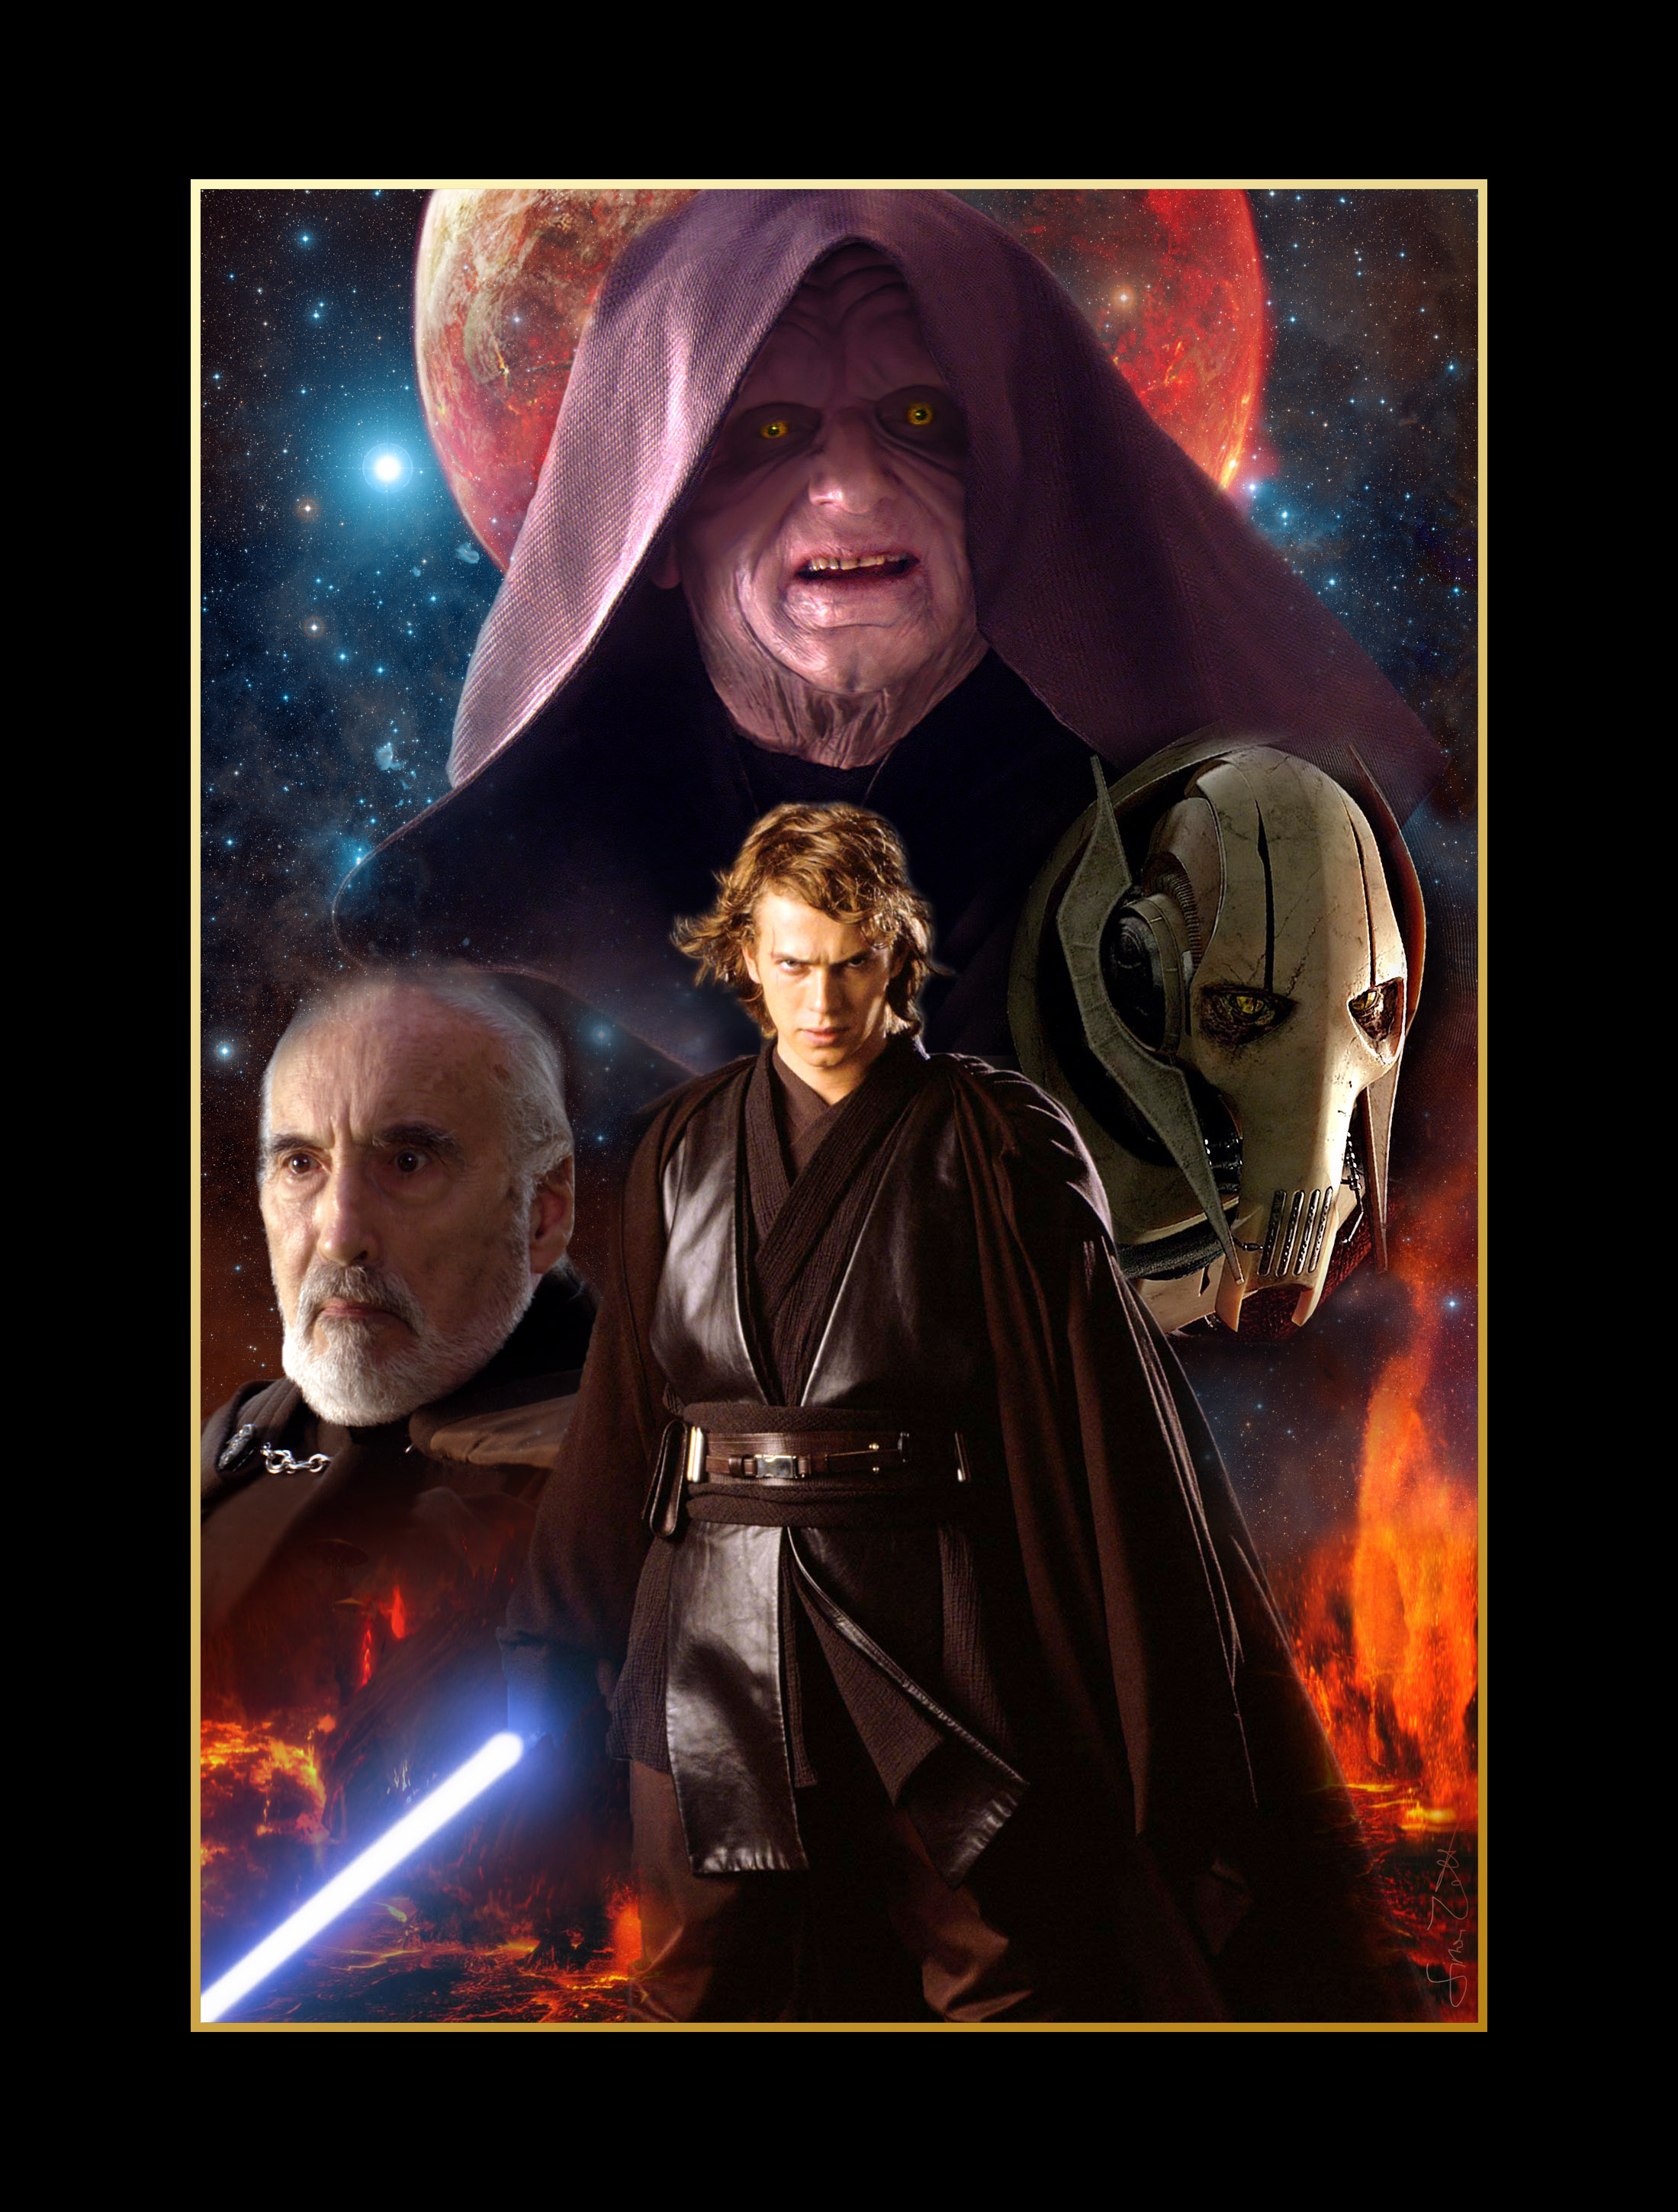 Two posters represents the good and the evil in star wars episode